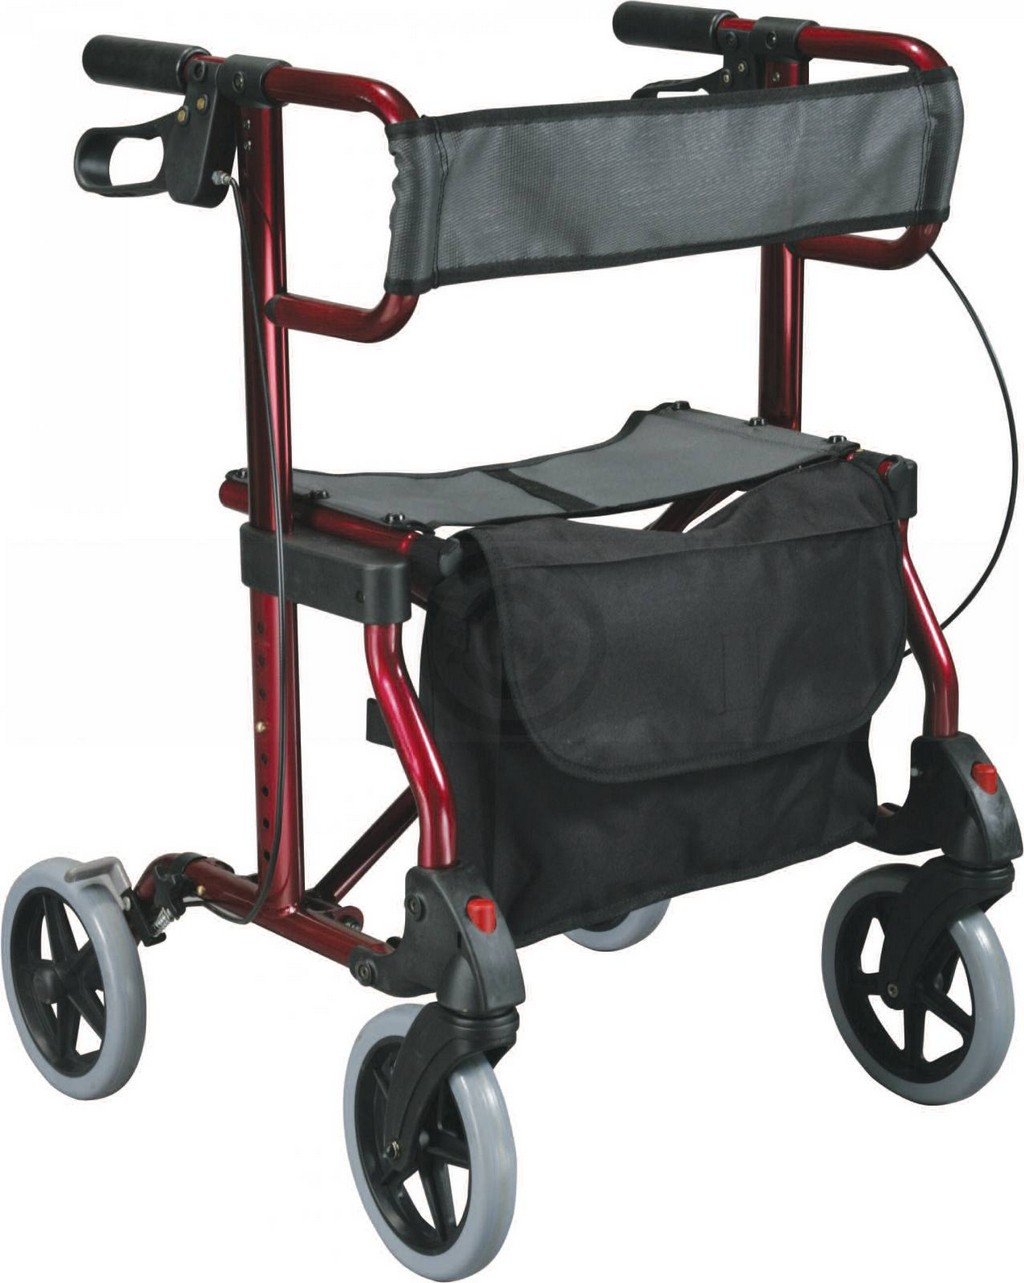 pro basics rollators, bariatric rollator, cosco rollators, three wheeled rollators